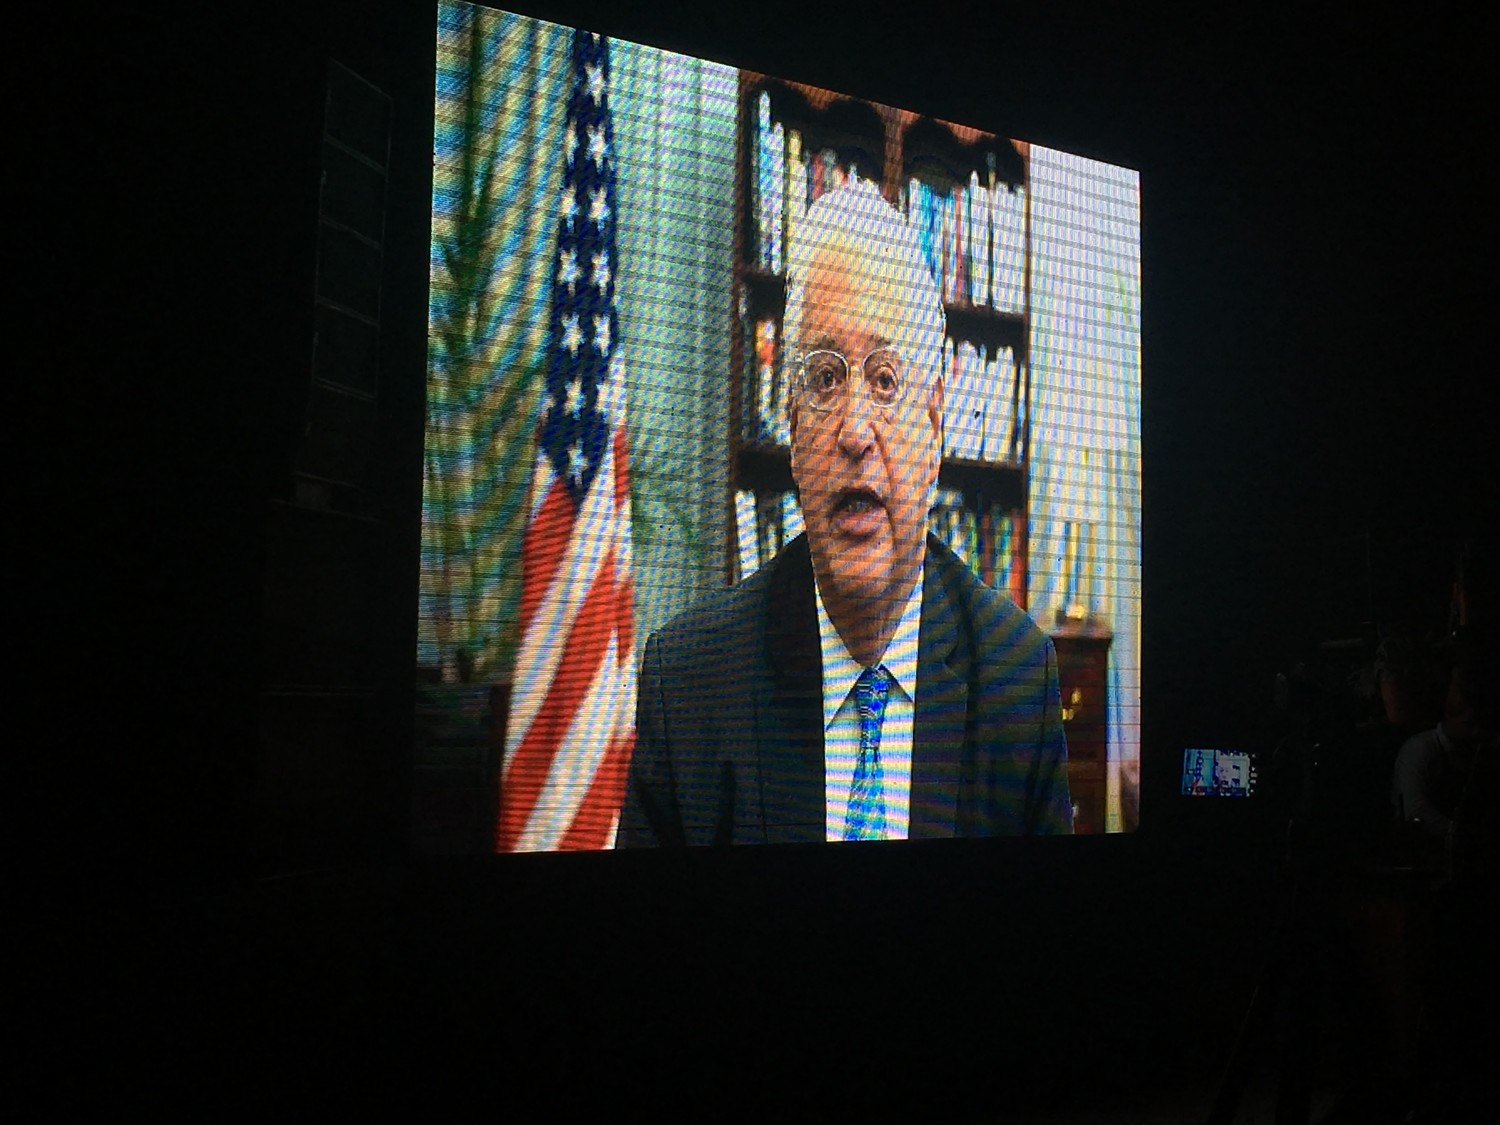 U.S. Ambassador to Israel David Friedman speaks on video to the Jewish Media Summit on Sunday night in Jerusalem.